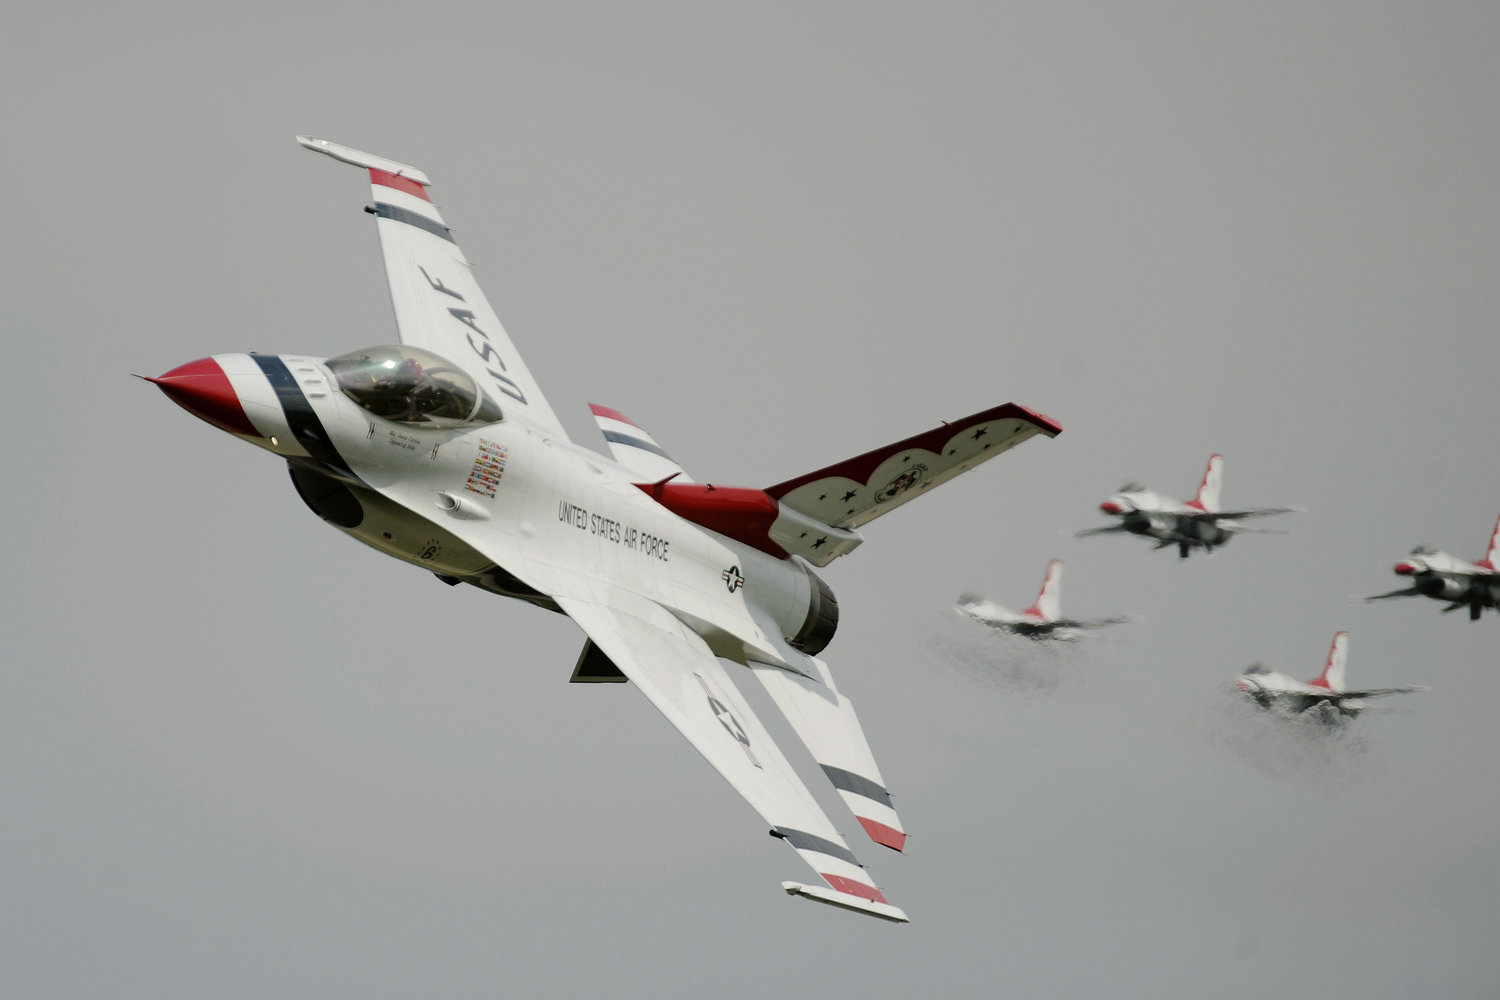 The renowned U.S. Air Force Thunderbirds are back in action over Jones Beach this weekend.